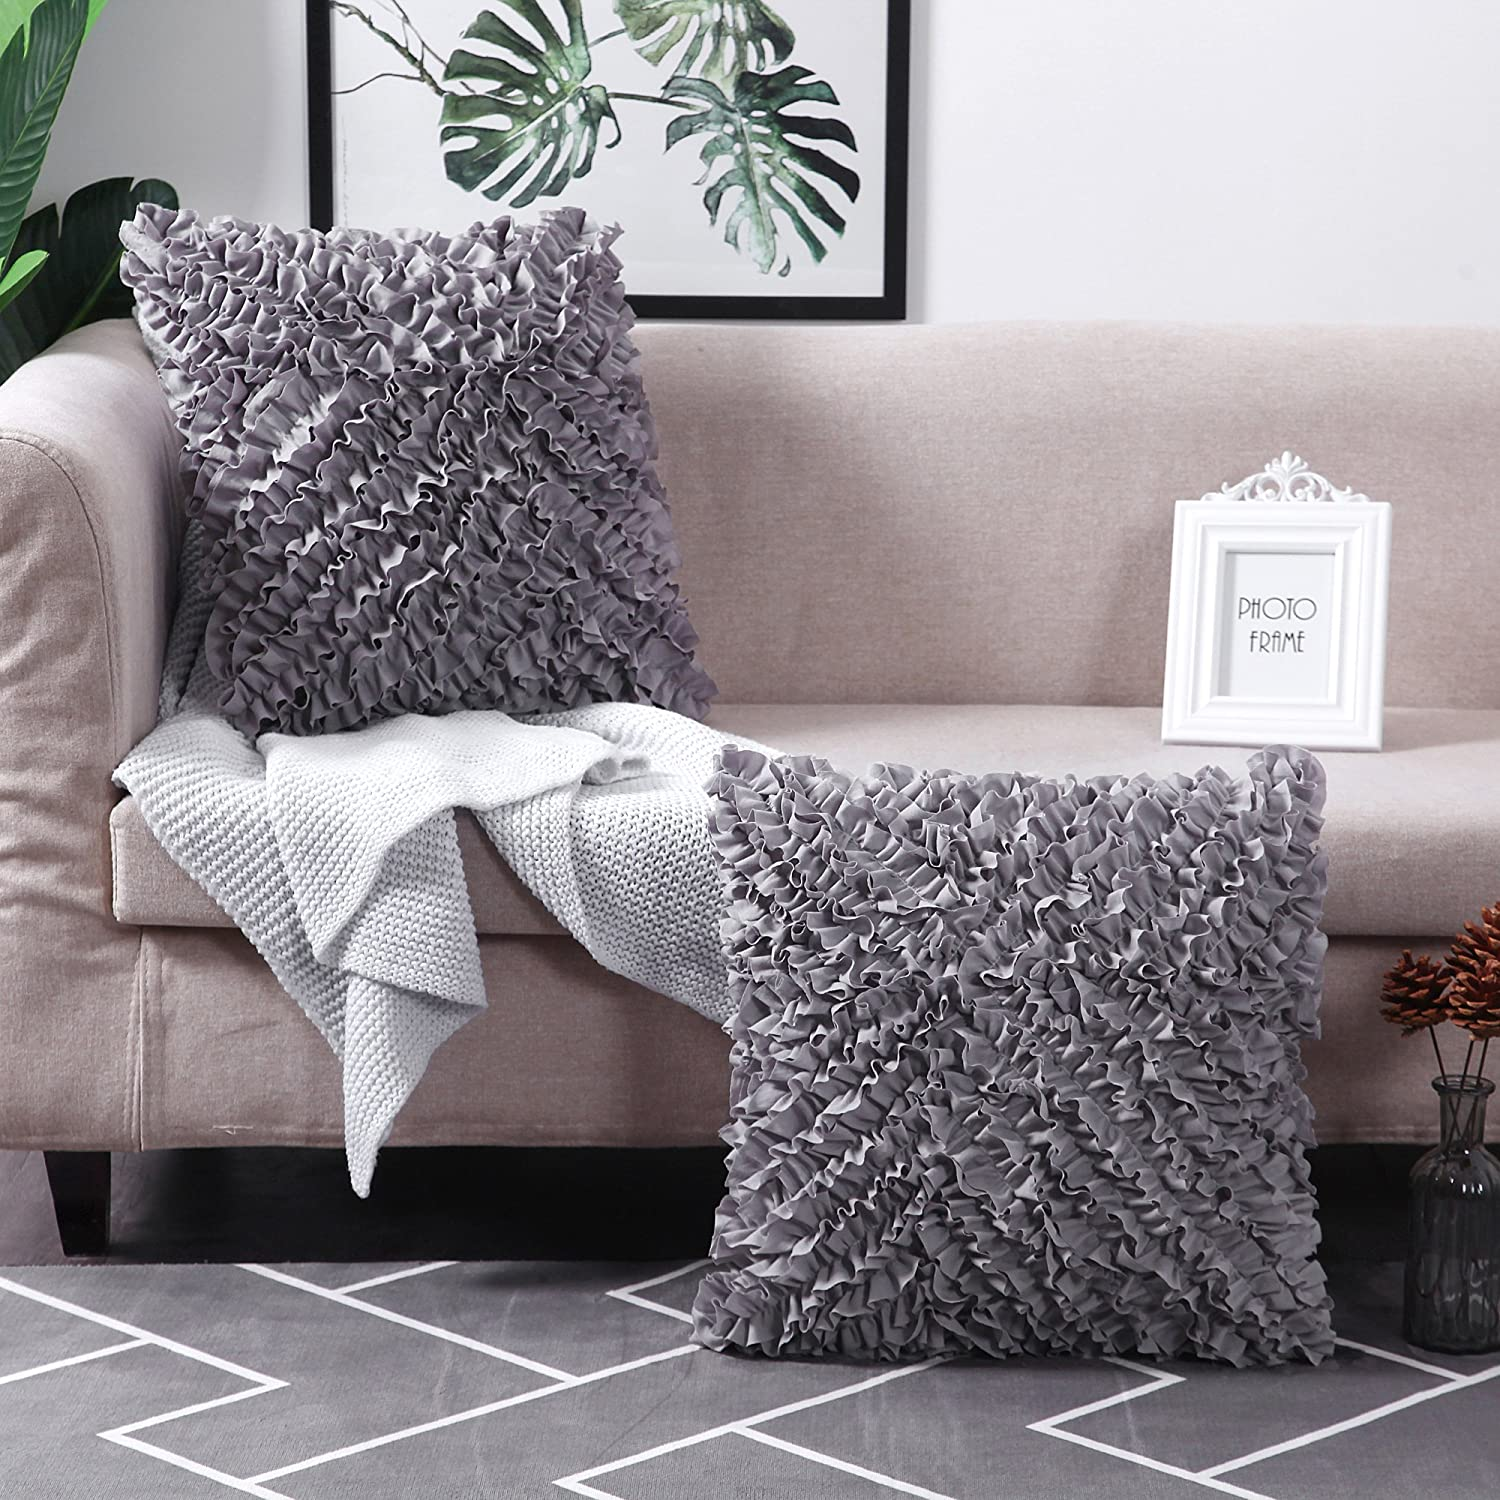 Incredible Moma Decorative Throw Pillow Covers Set Of 2 Pillow Cover Sham Cover Dark Grey Throw Pillow Cover Decorative Sofa Throw Pillow Cover Square Machost Co Dining Chair Design Ideas Machostcouk